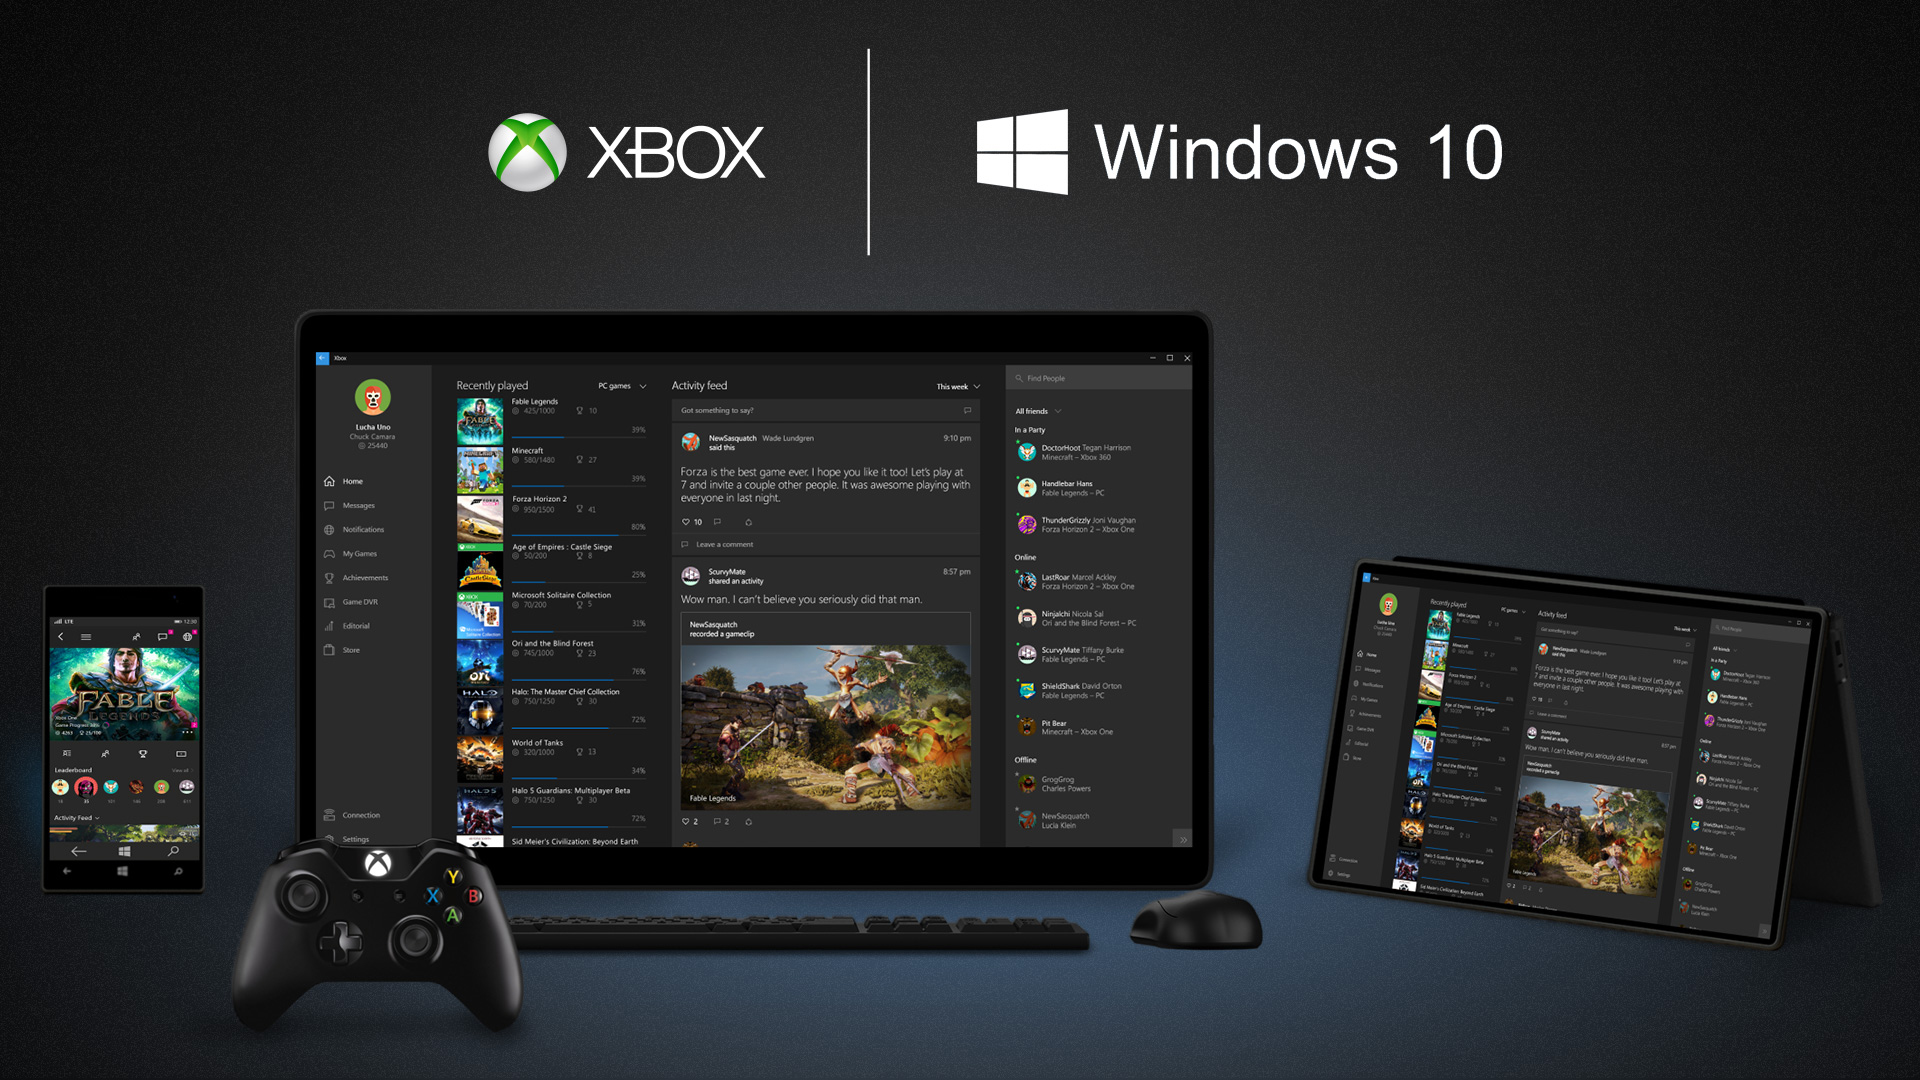 Microsoft Announces Game Streaming for Xbox One Games on